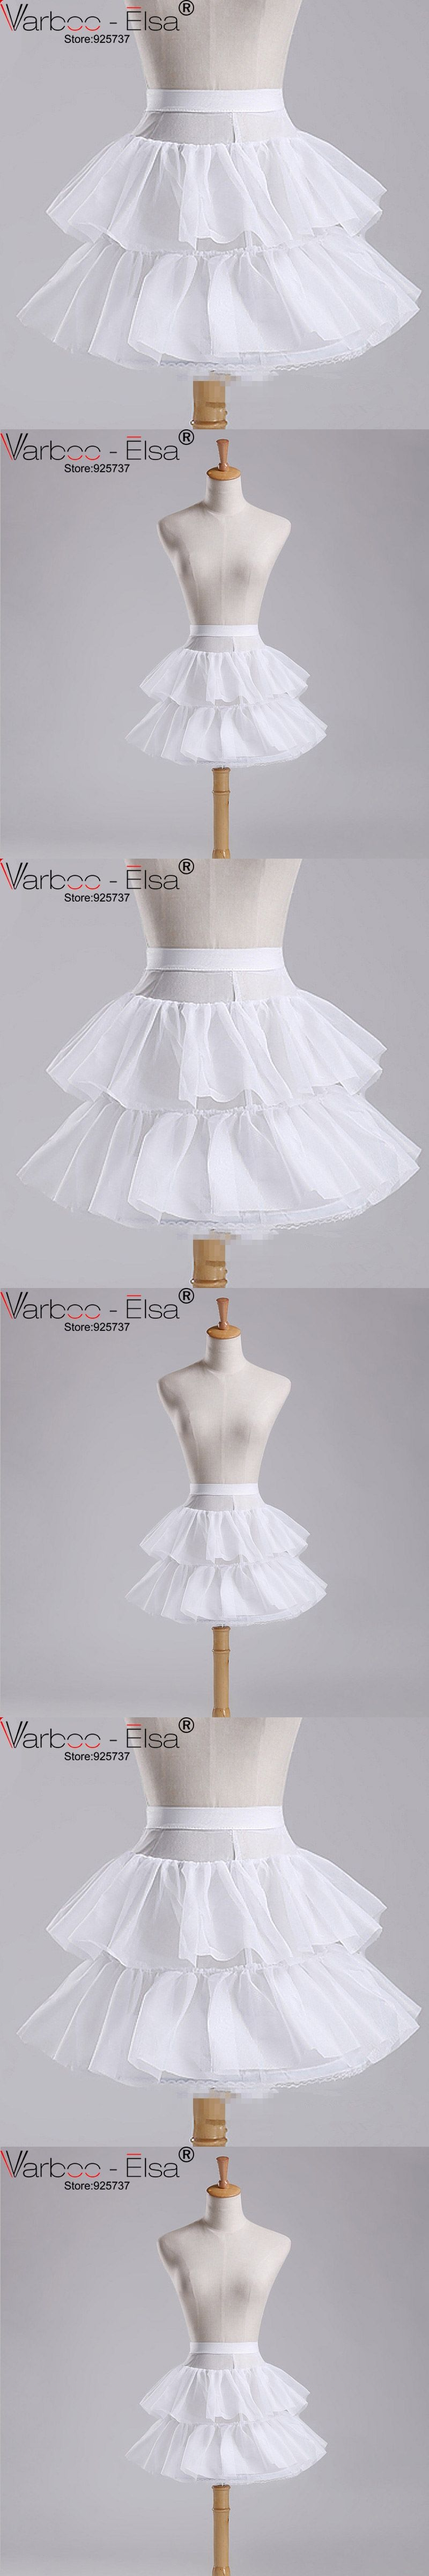 Petticoat for wedding dress  Petticoat Children  Layers Hoopless Short Ruffle Skirt Flower Girl